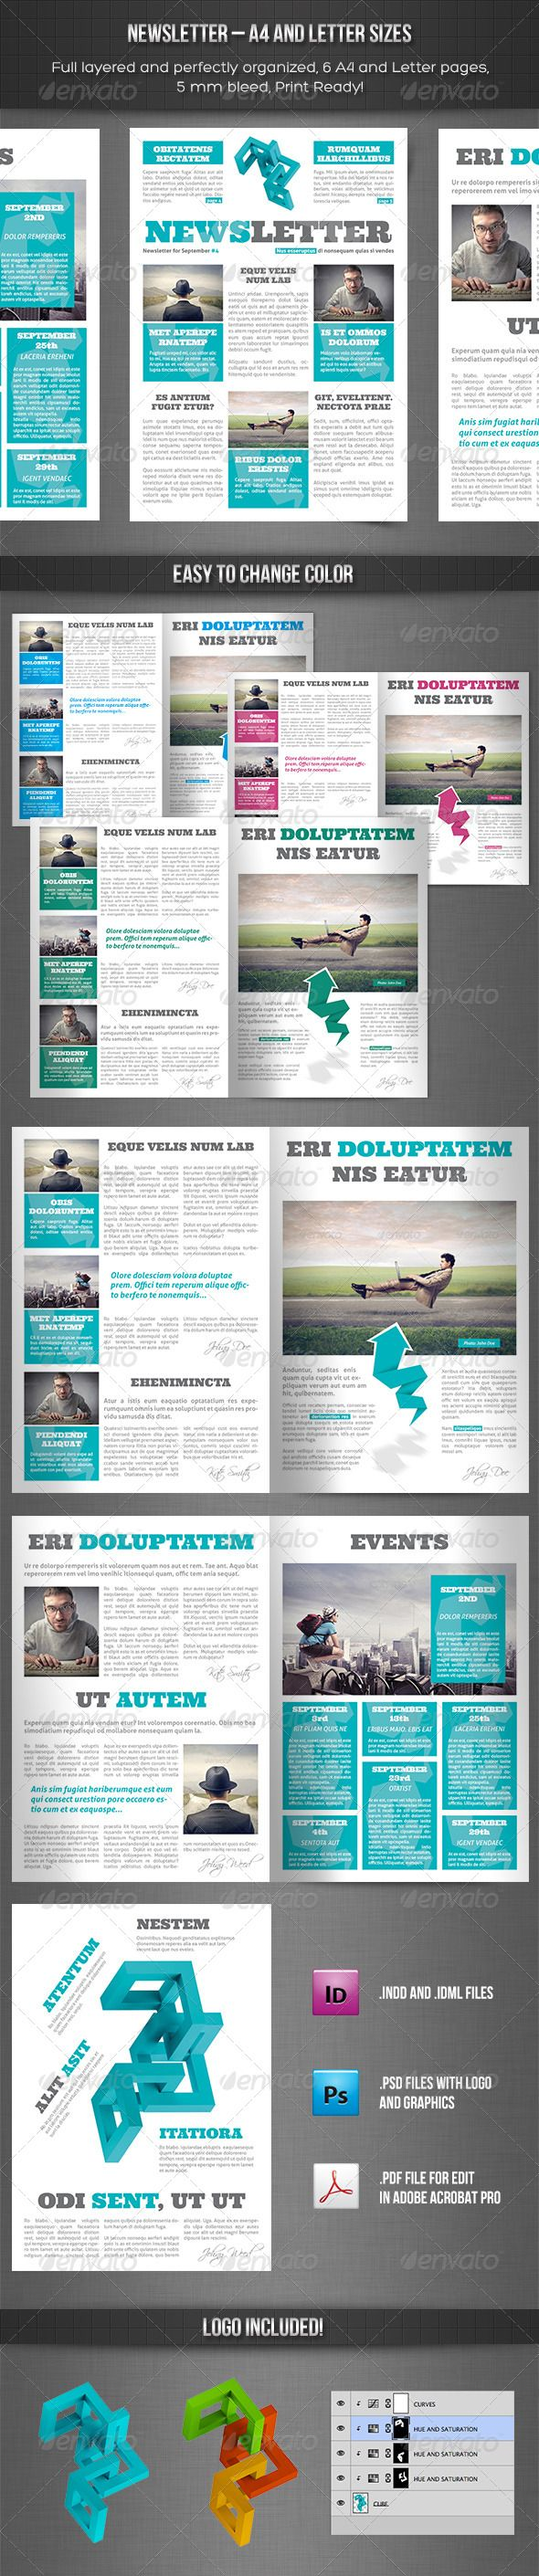 45 best images about newsletter templates on pinterest email newsletter templates public and for Newsletter templates indesign